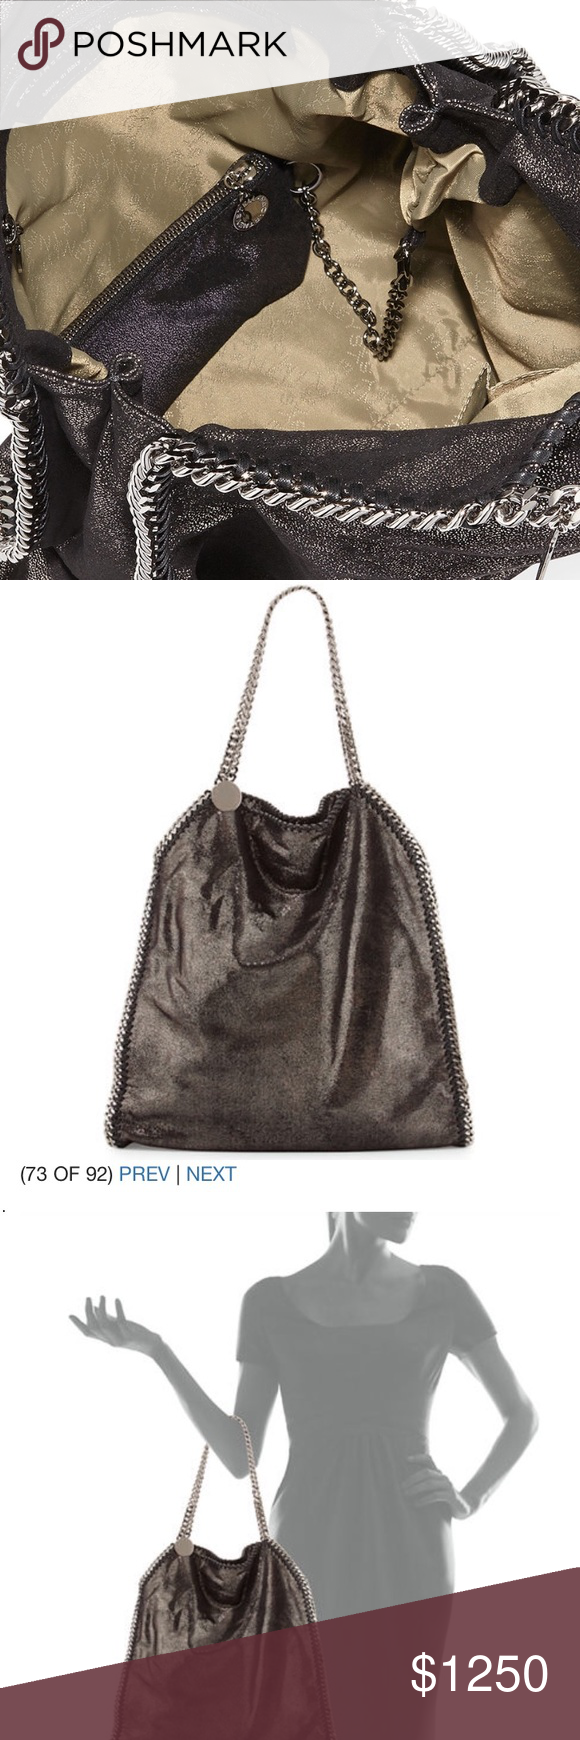 b785e40447a Stella McCartney Falabella Tote in Ruthenium. This is the large Stella  McCartney Falabella handbag. It s stunning and even comes with a mini  matching wallet ...